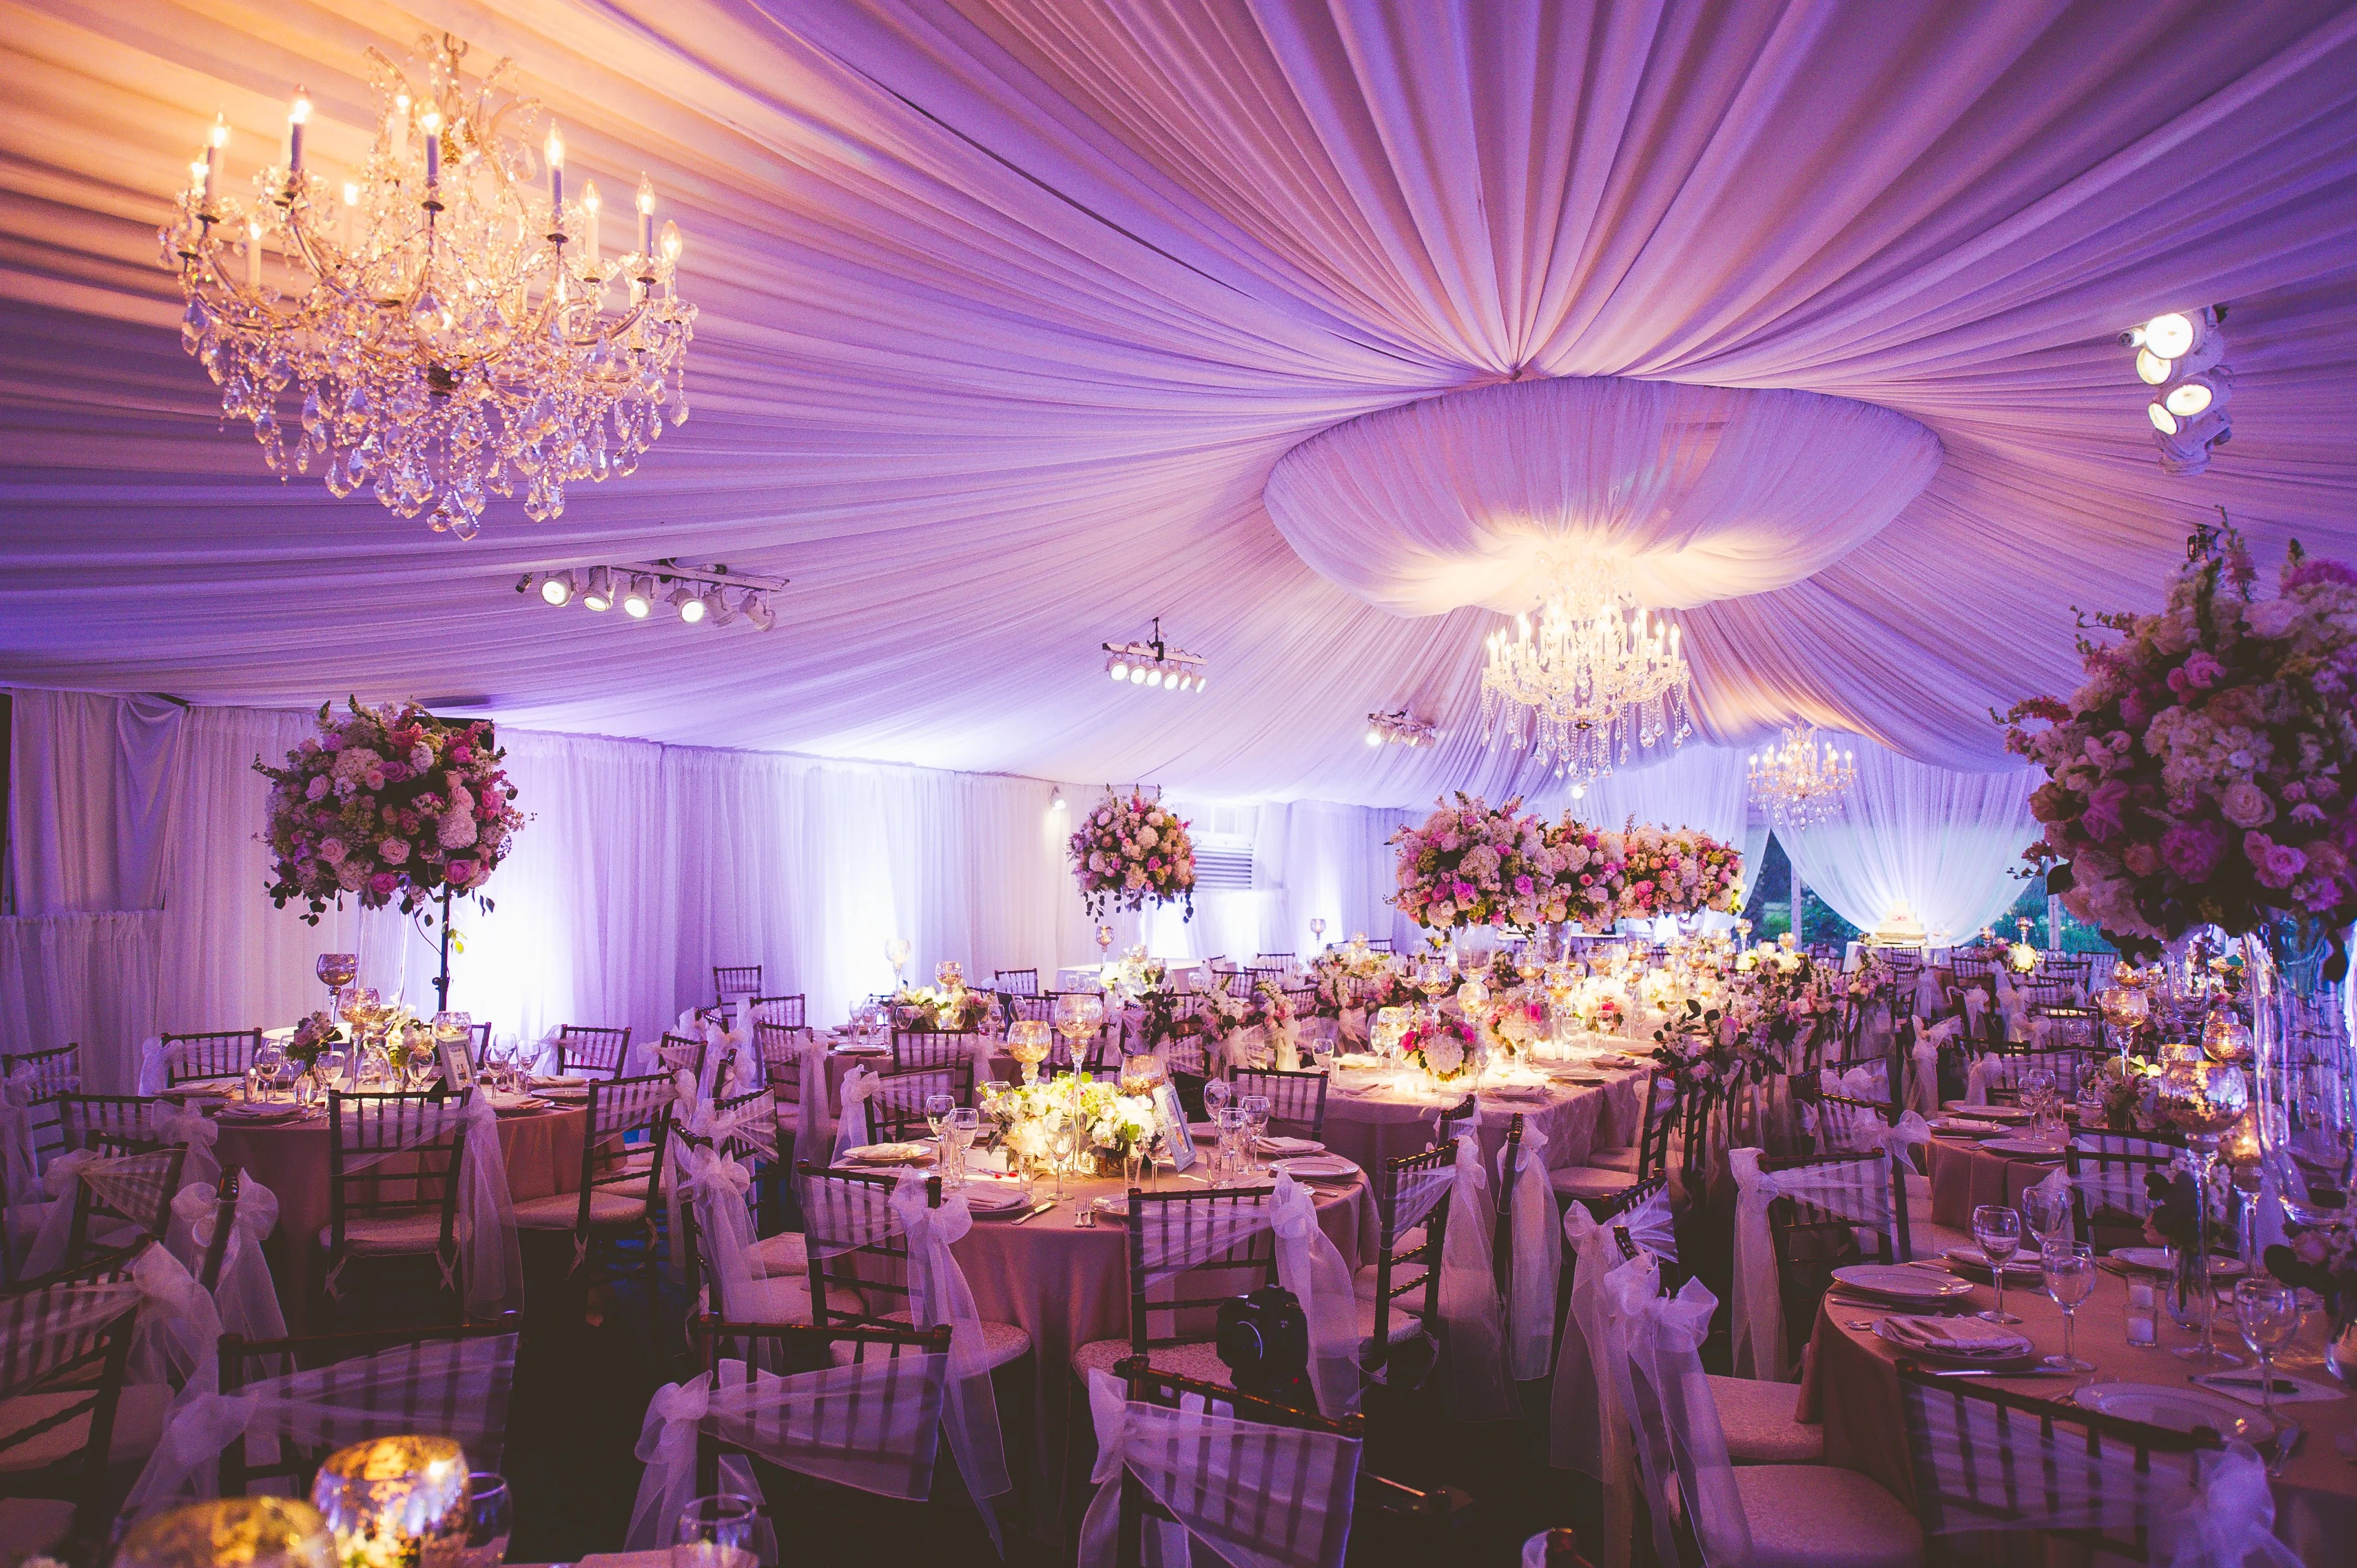 Romantic Elegant Reception Tent With Crystal Chandeliers